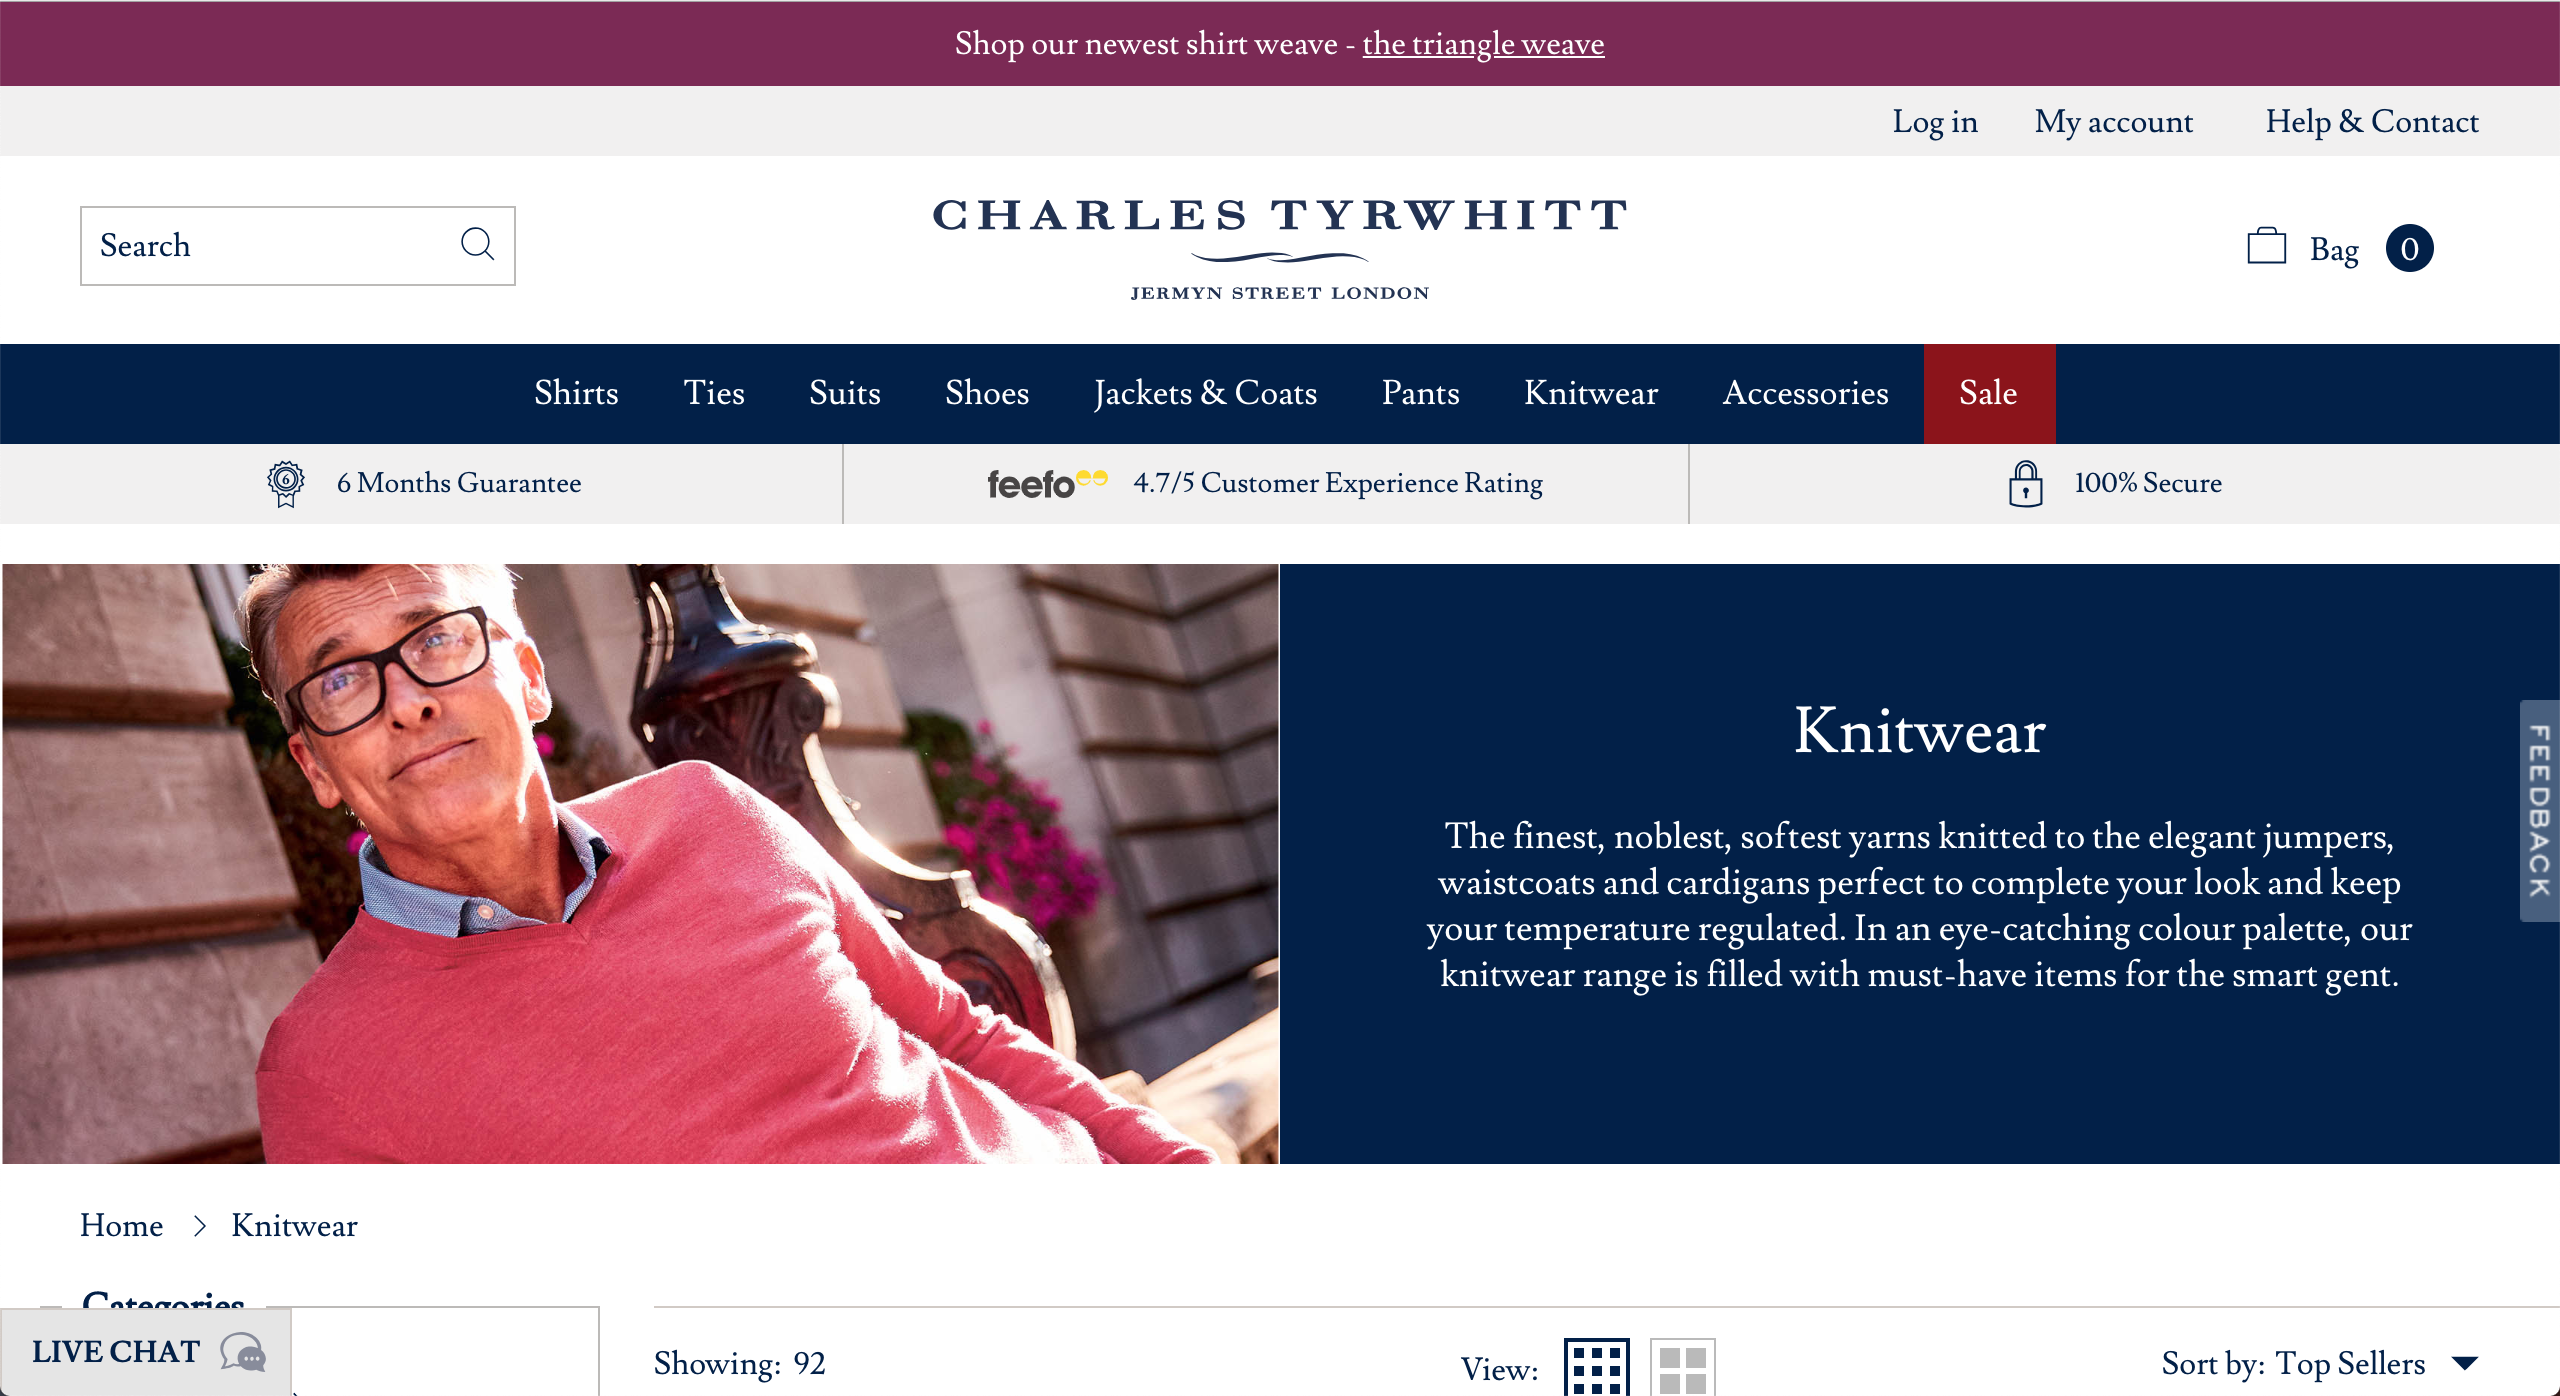 Charles Tyrwhitt knitwear pages